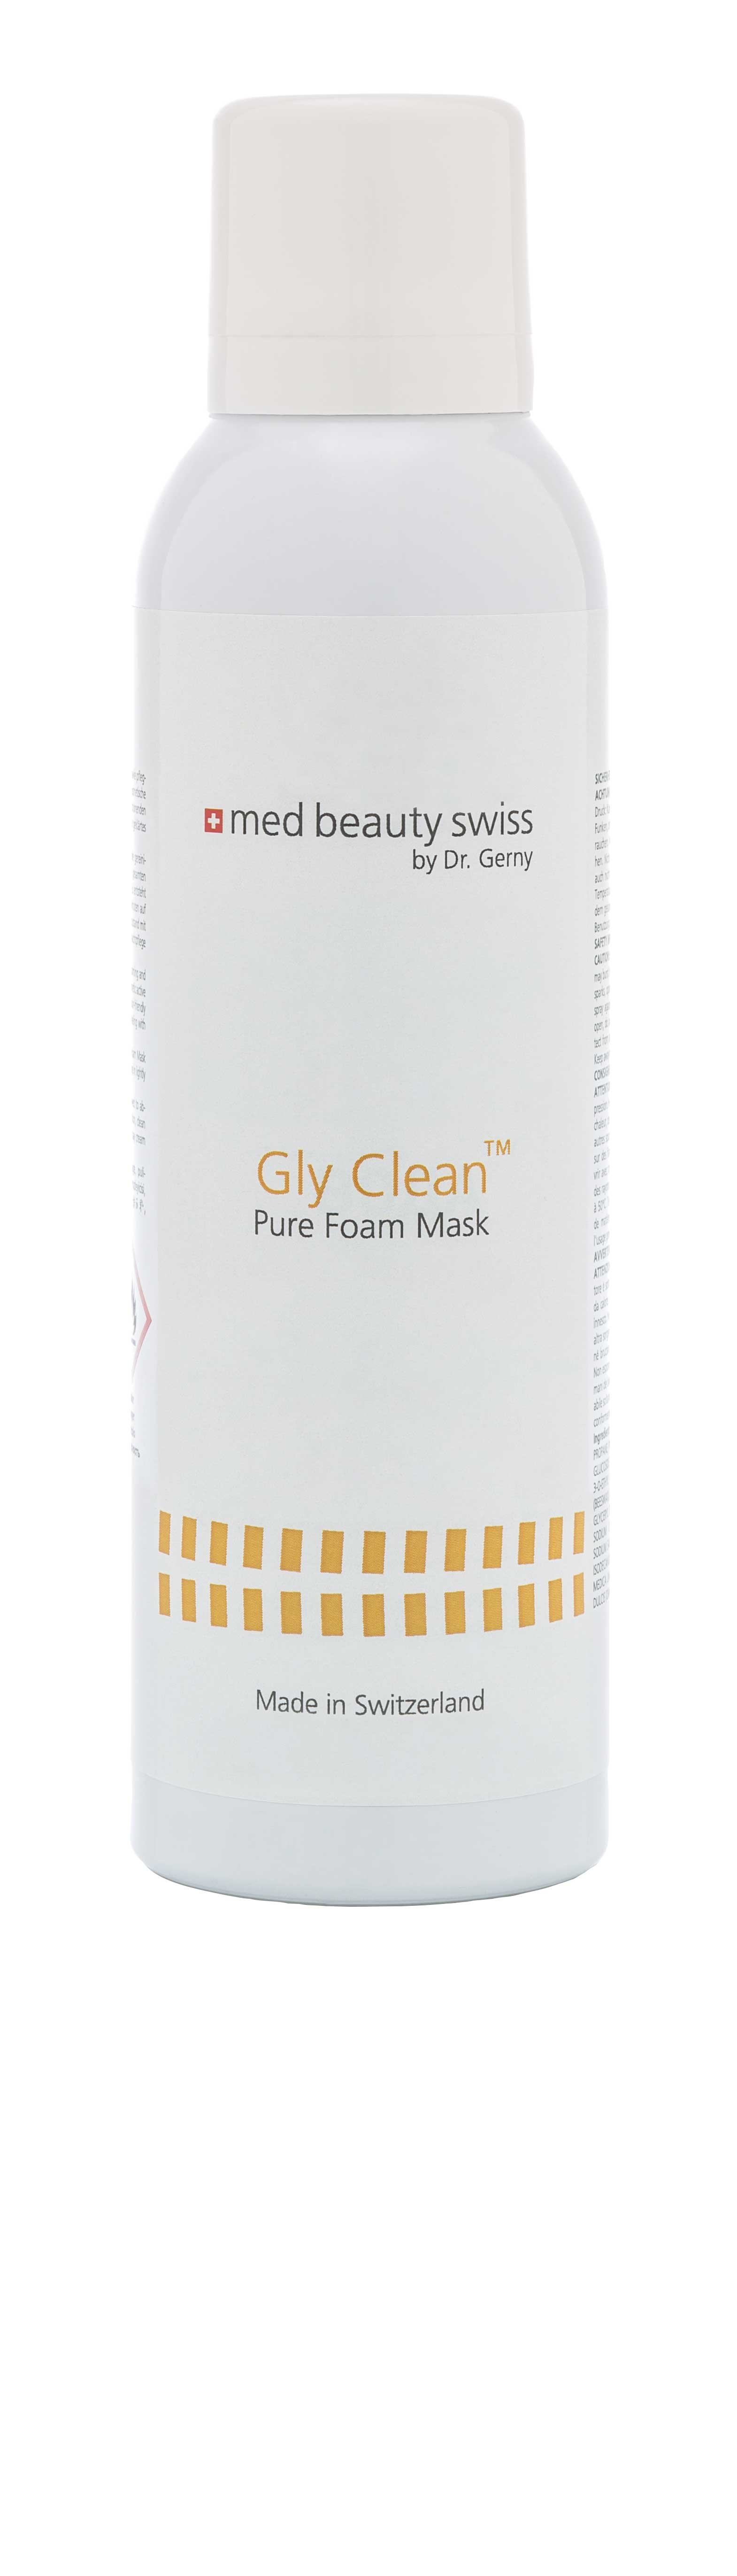 Gly Clean Pure Foam Mask